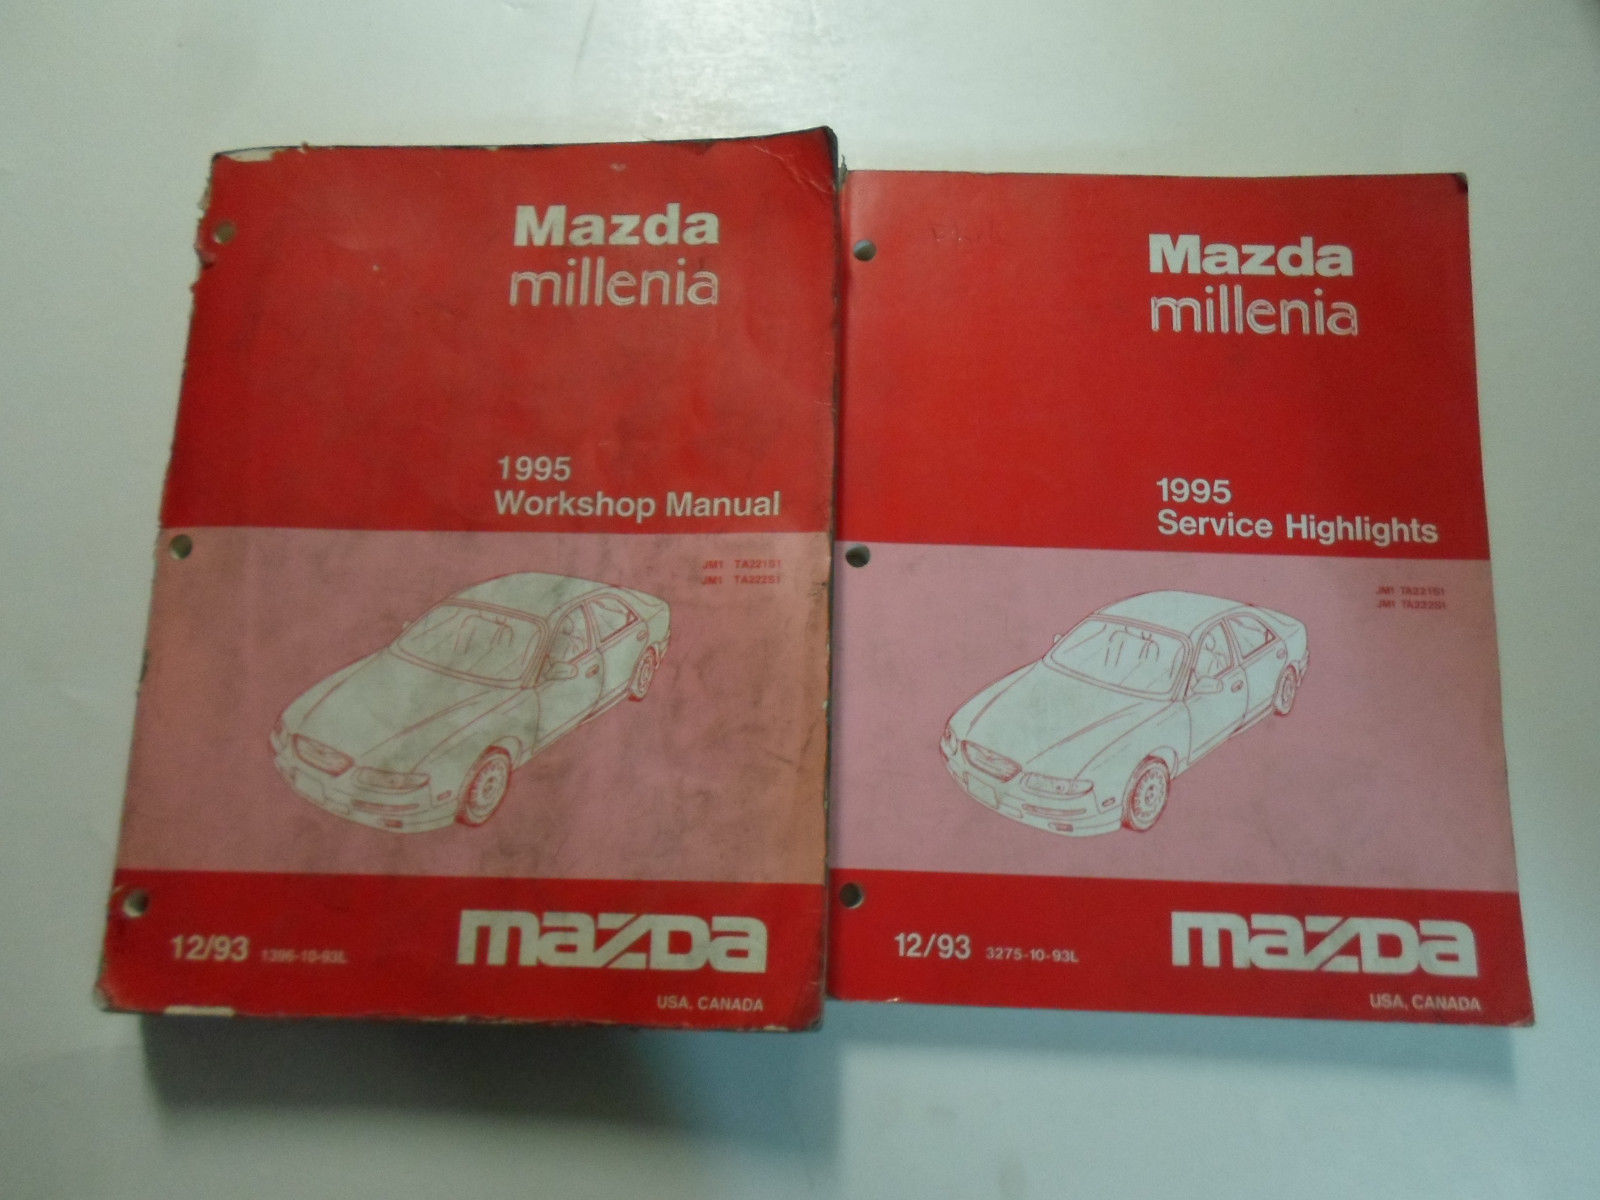 1995 Mazda Millenia Workshop Manual 2 VOL SET STAINED WORN FACTORY OEM BOOK  95